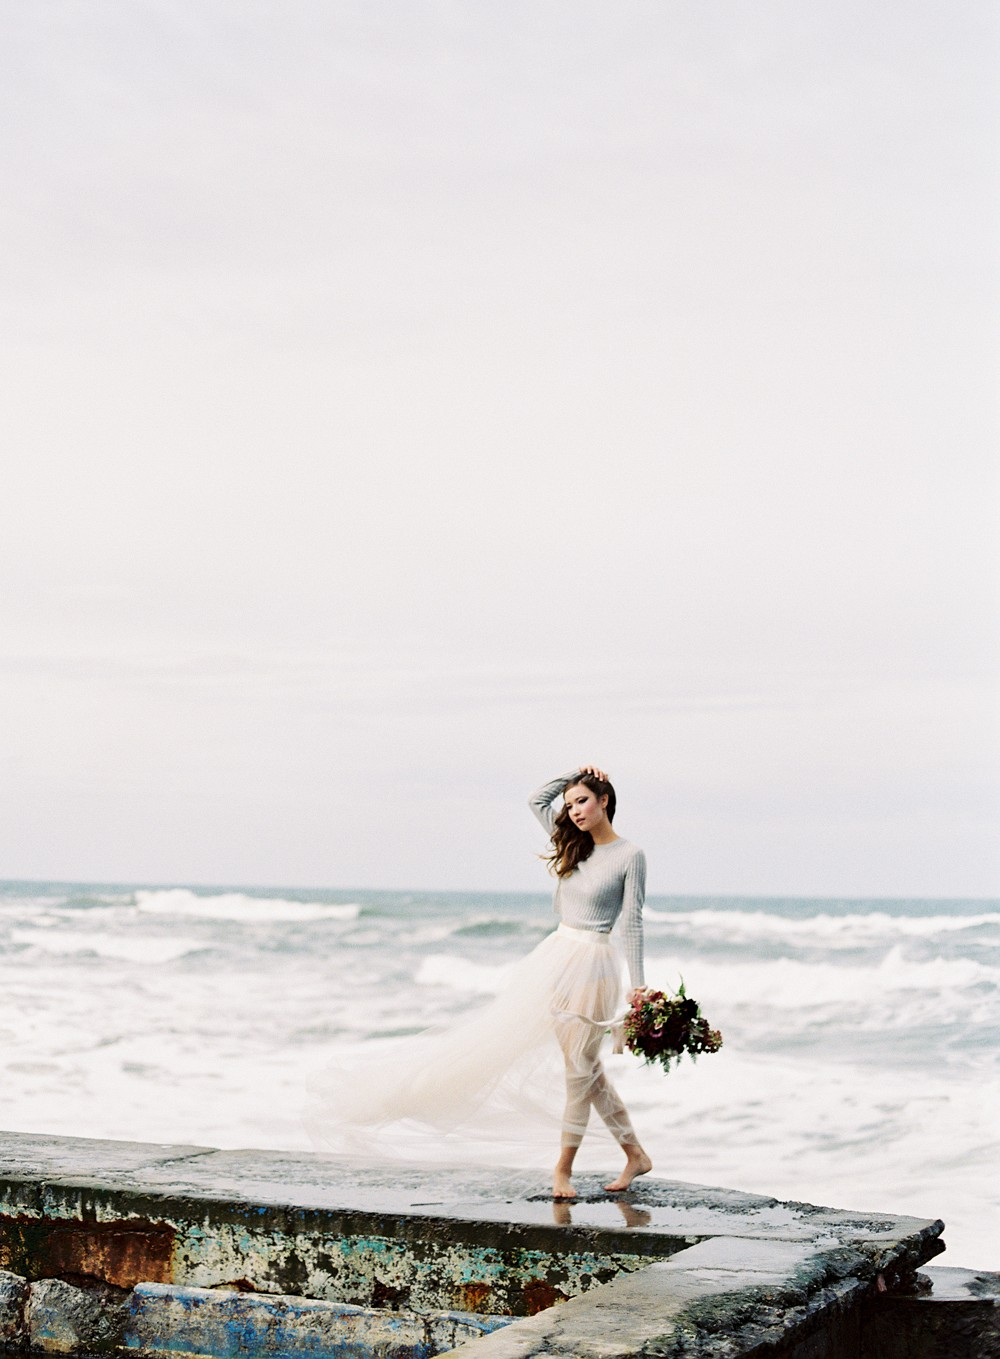 Misty Ocean Bridal Inspiration